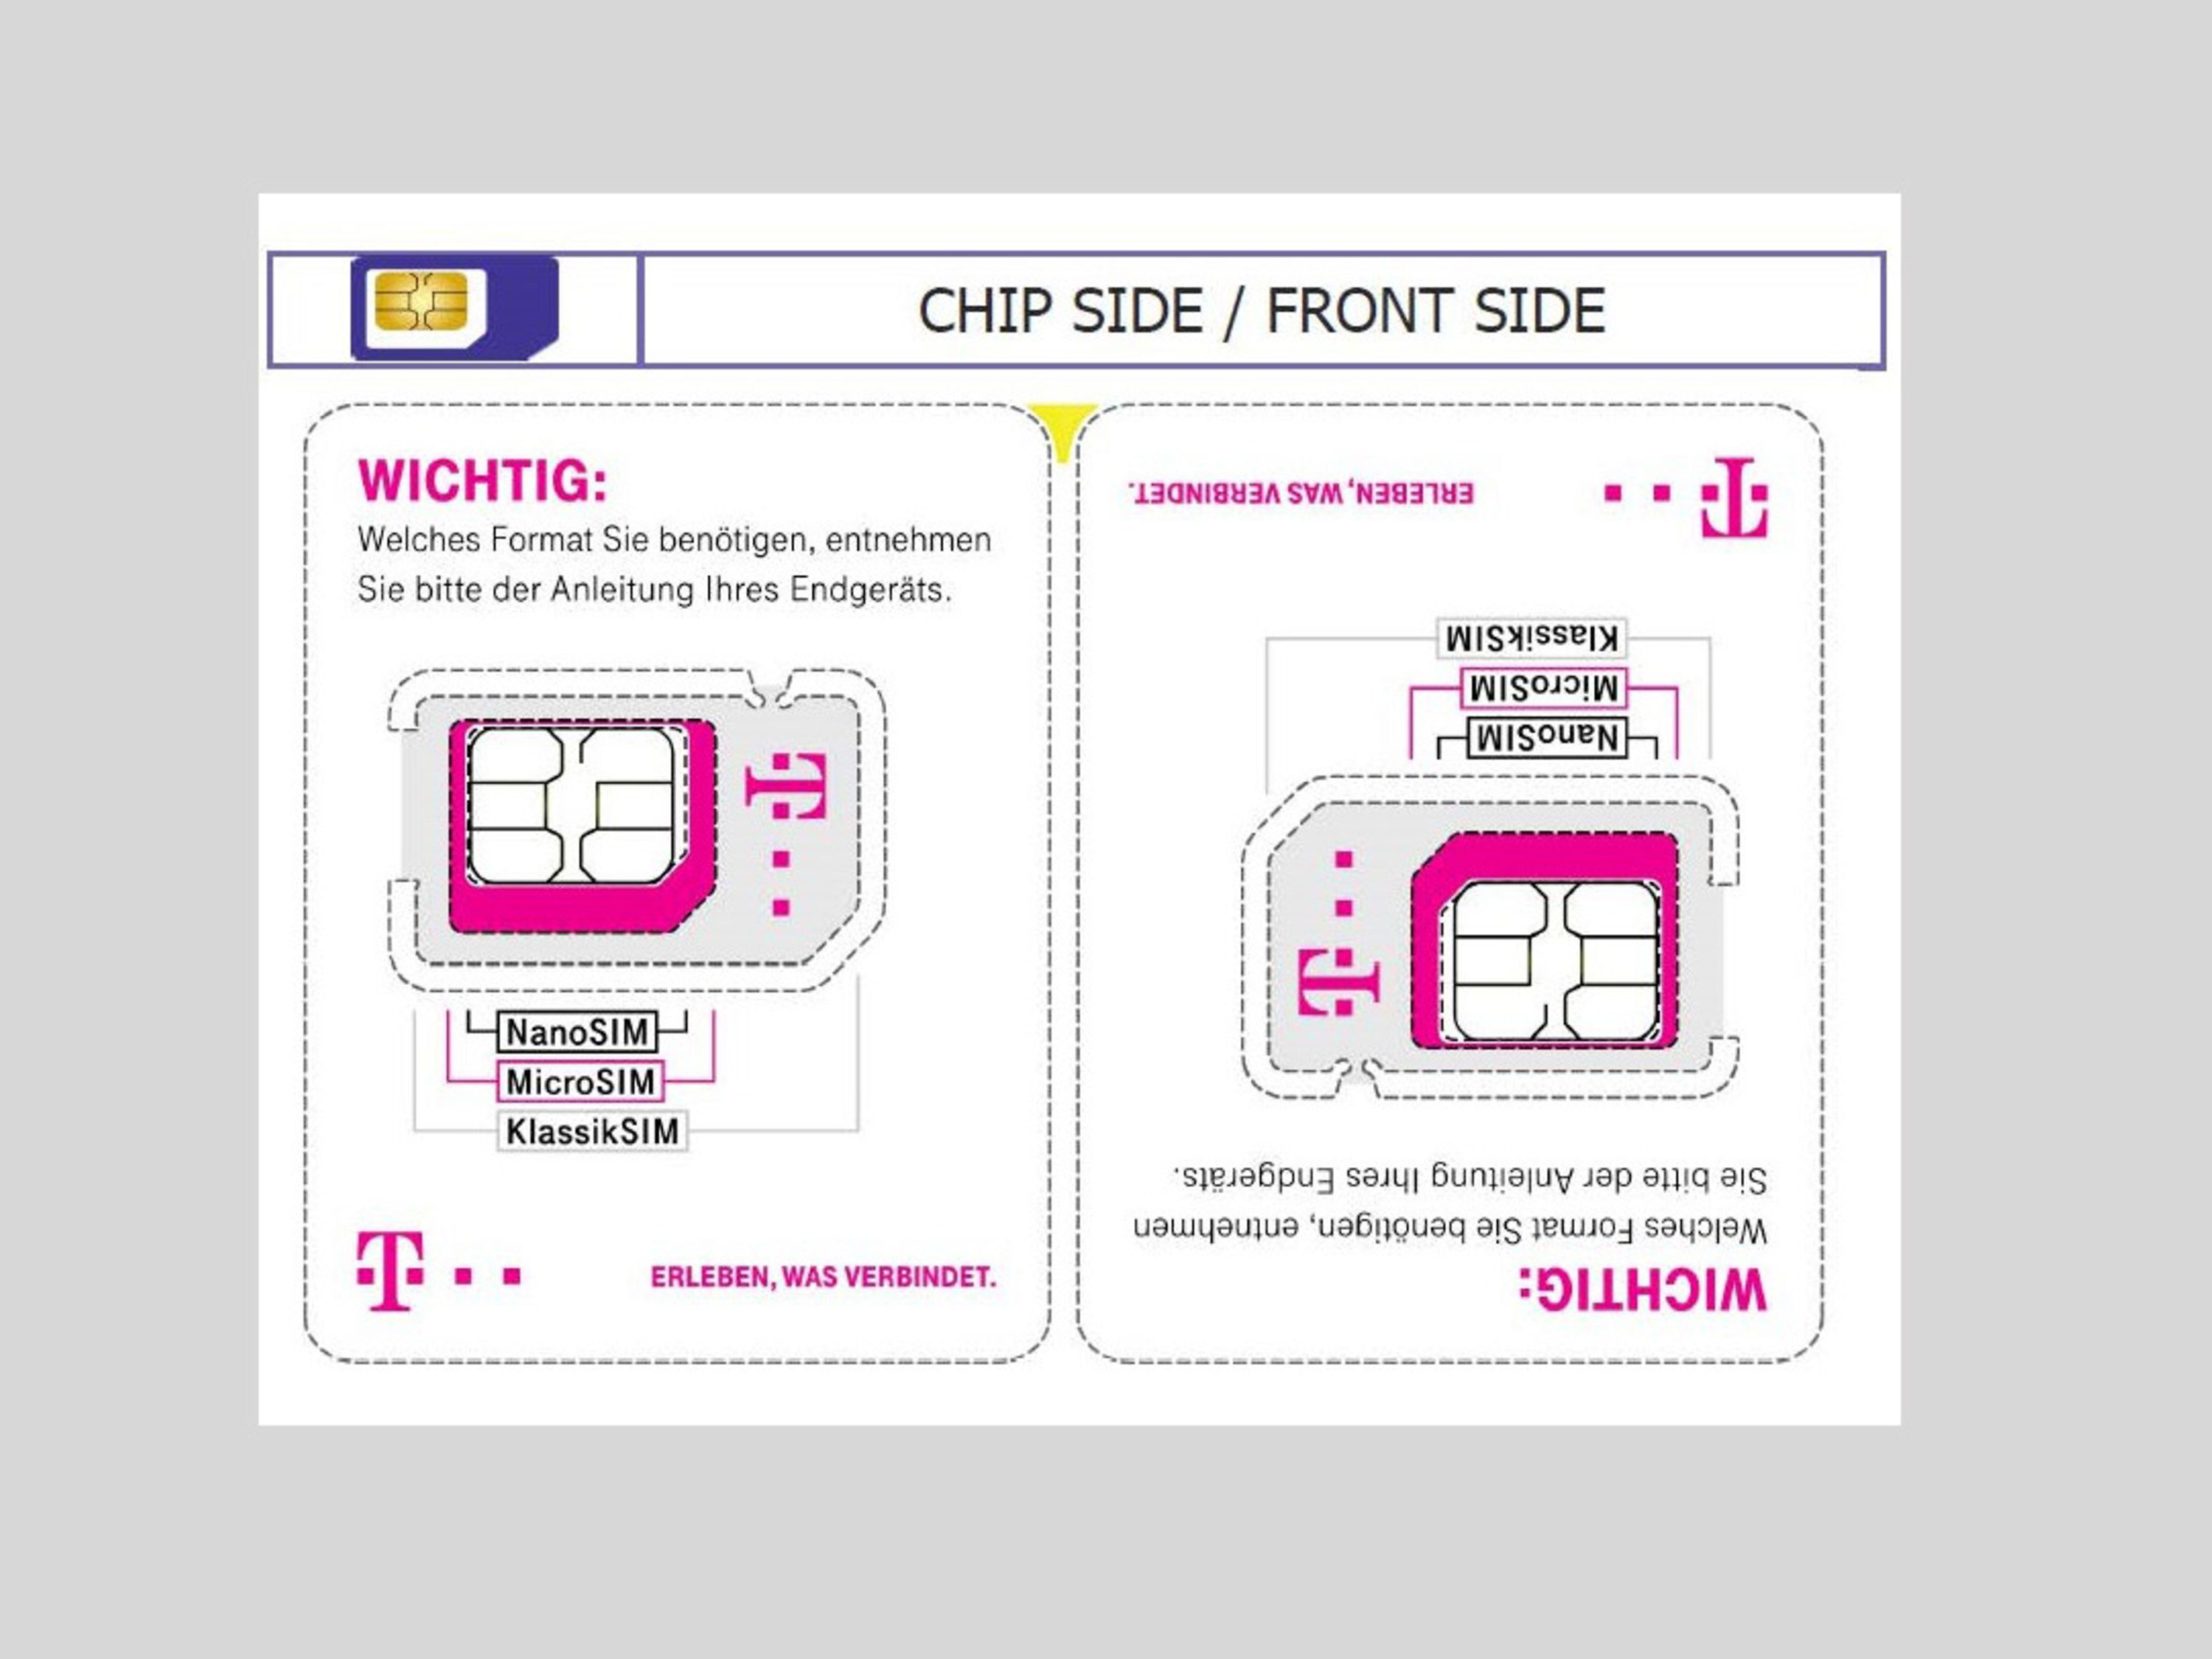 Less plastic waste: Telekom reduces SIM card size